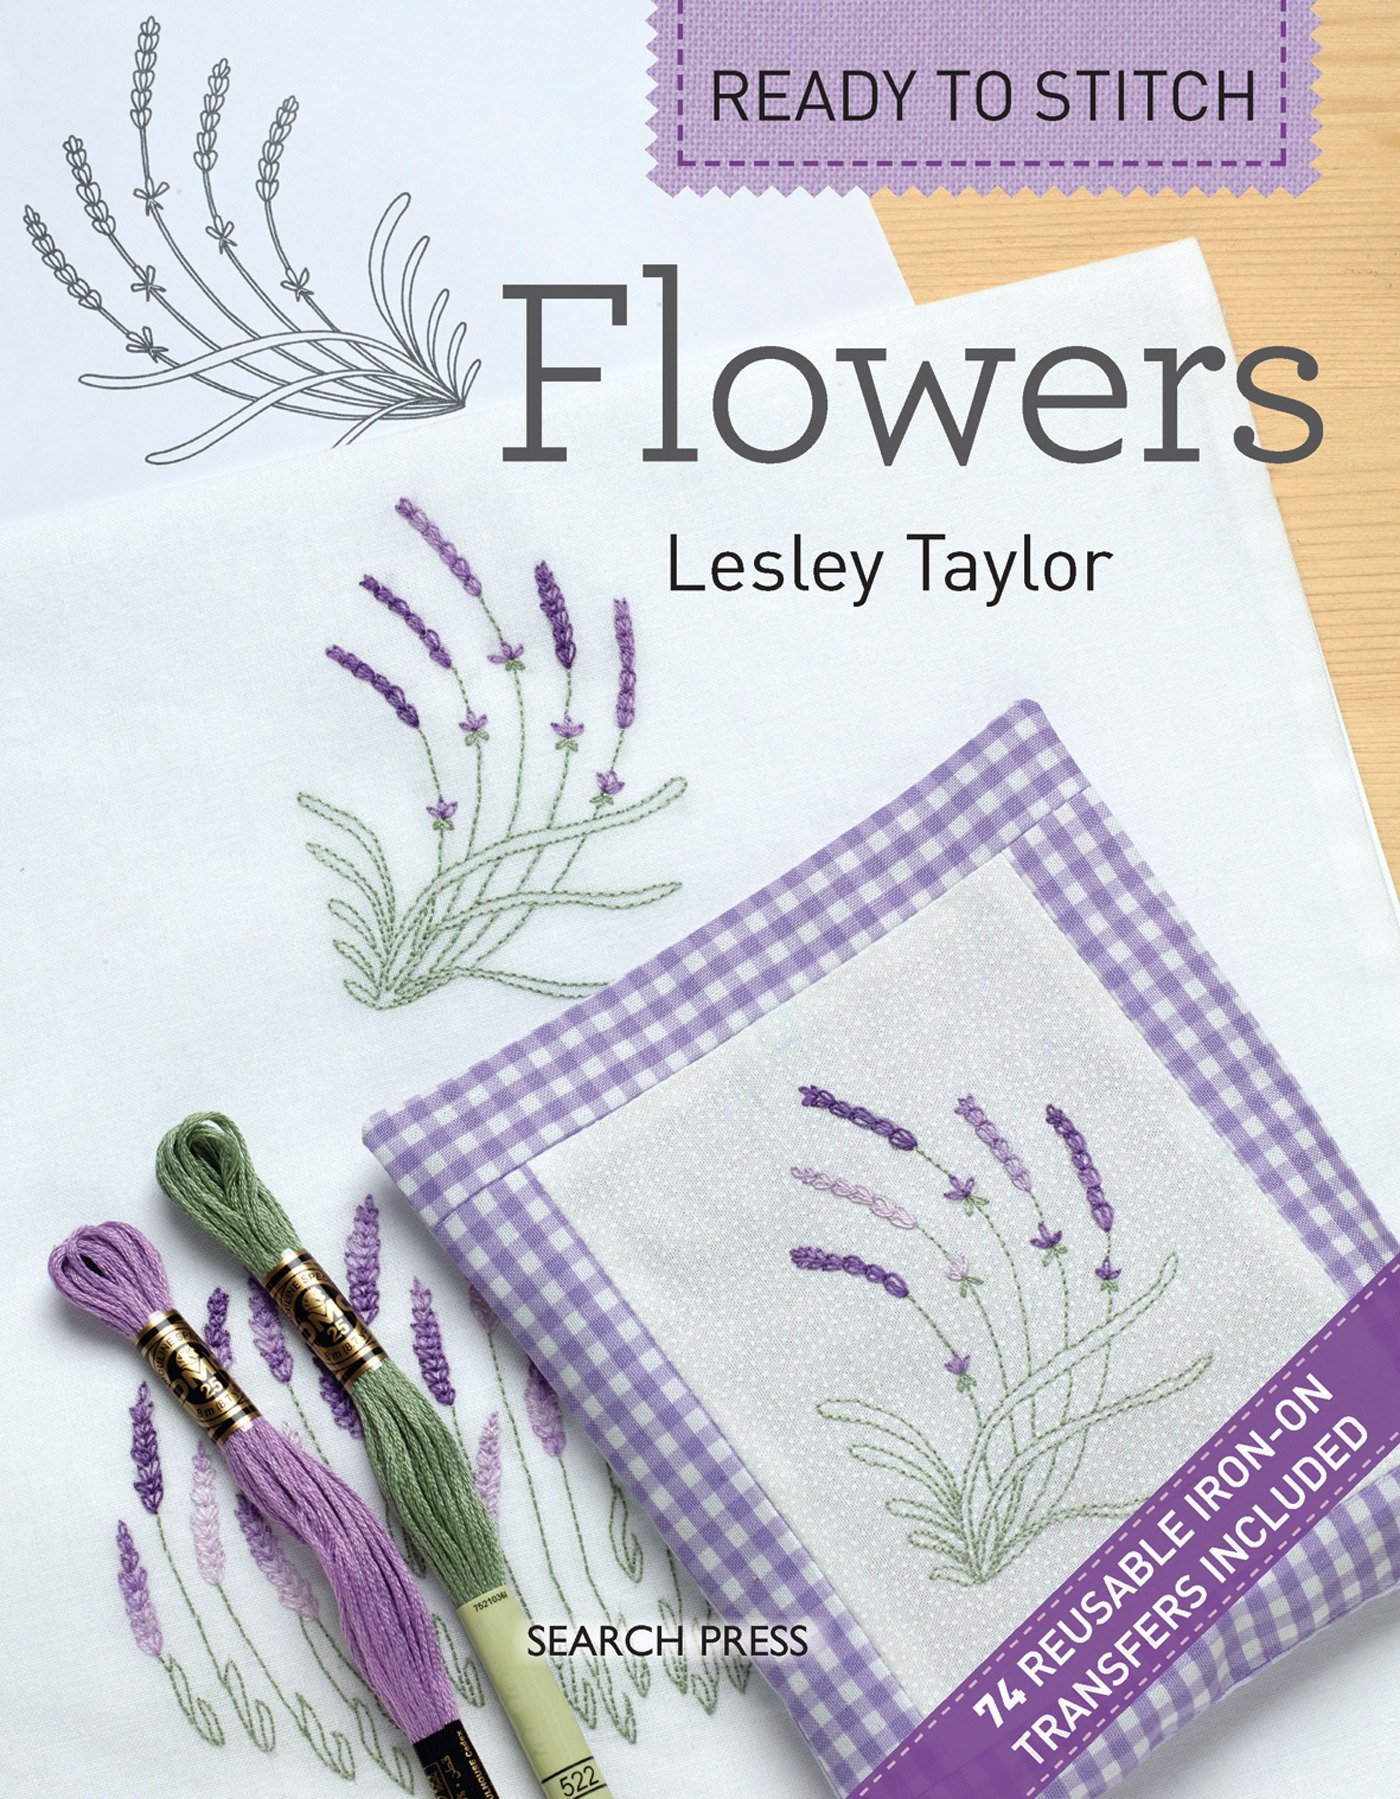 ready-to-stitch-flowers